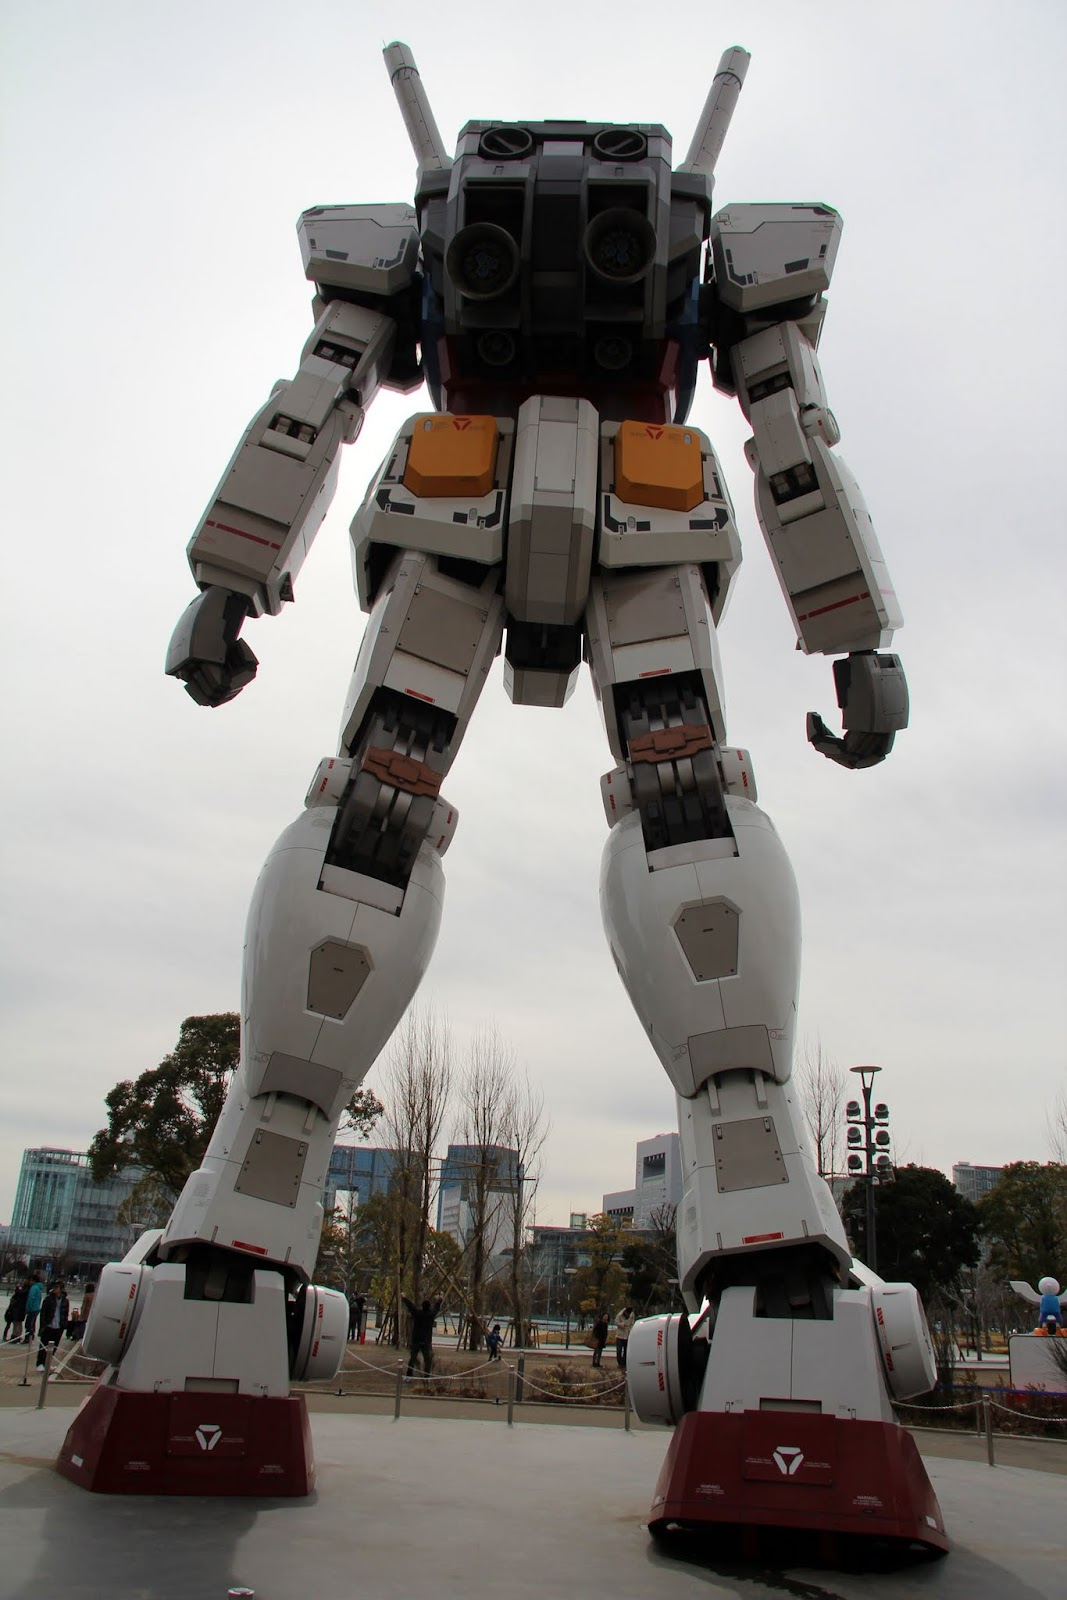 Tokyo Excess: Where To Find Giant Anime Robot Statues in Japan